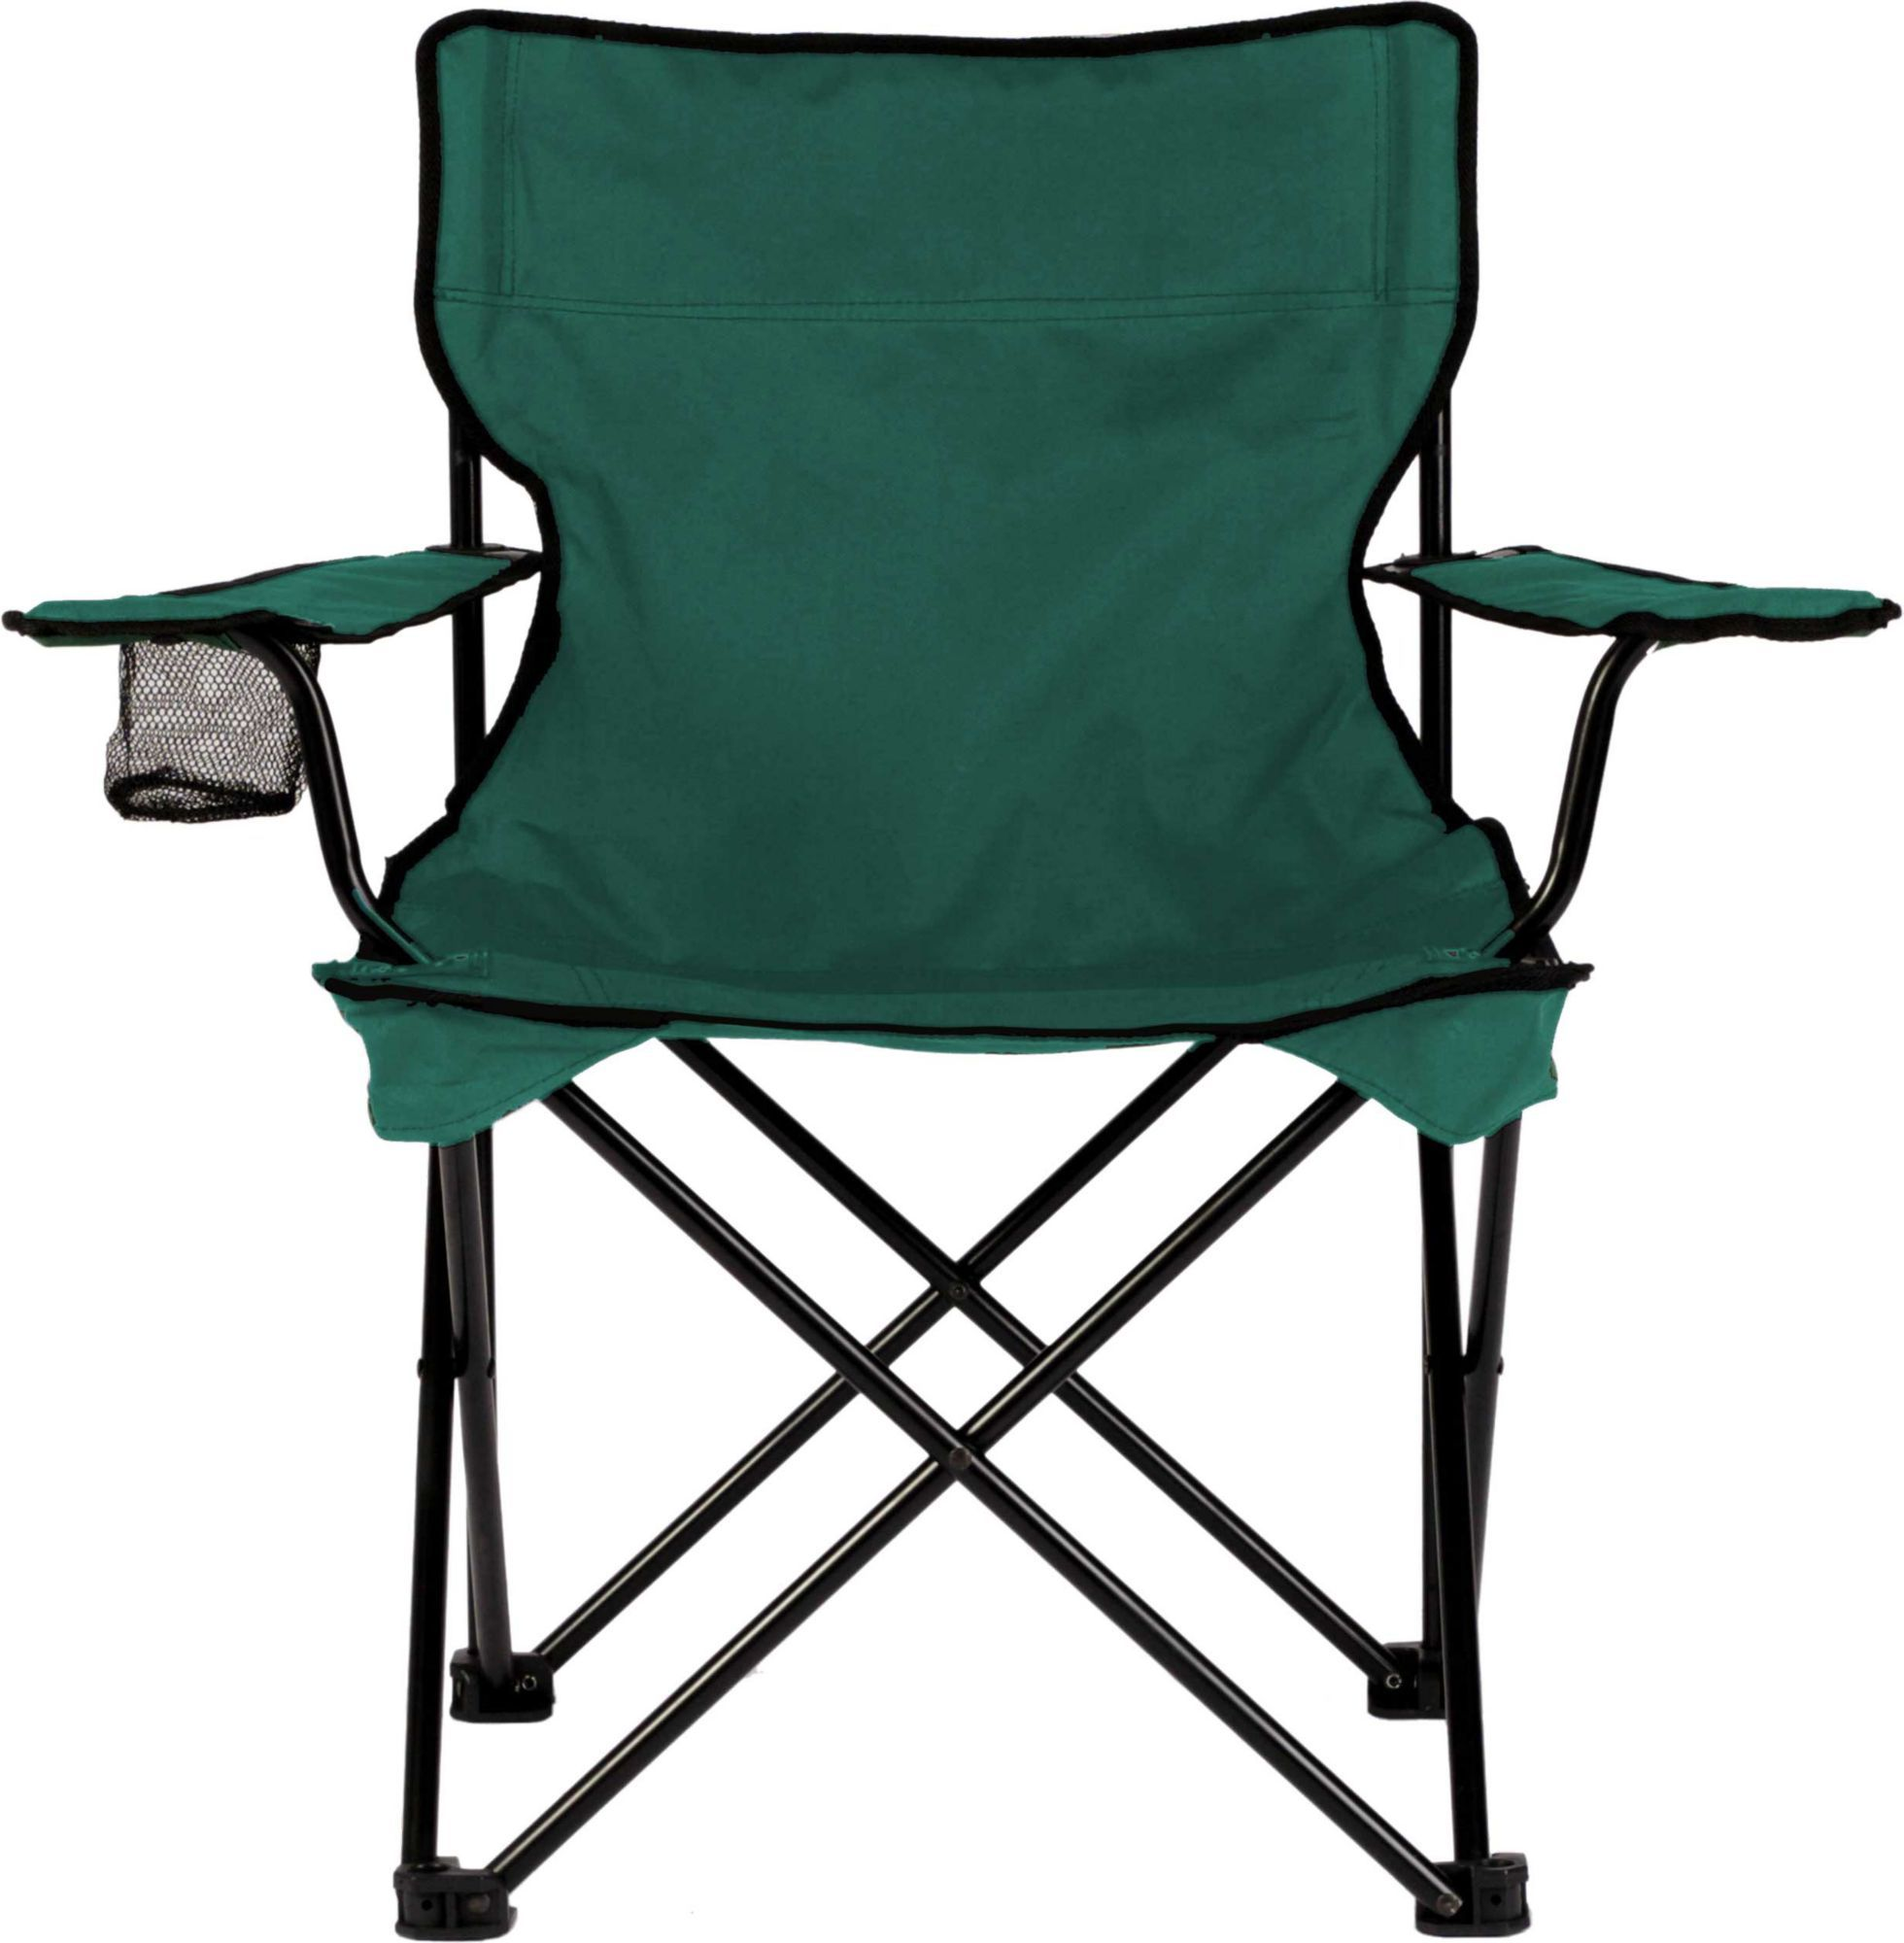 Travelchair C Series Rider Chair Folding Camping Chairs Camping Chairs Folding Chair